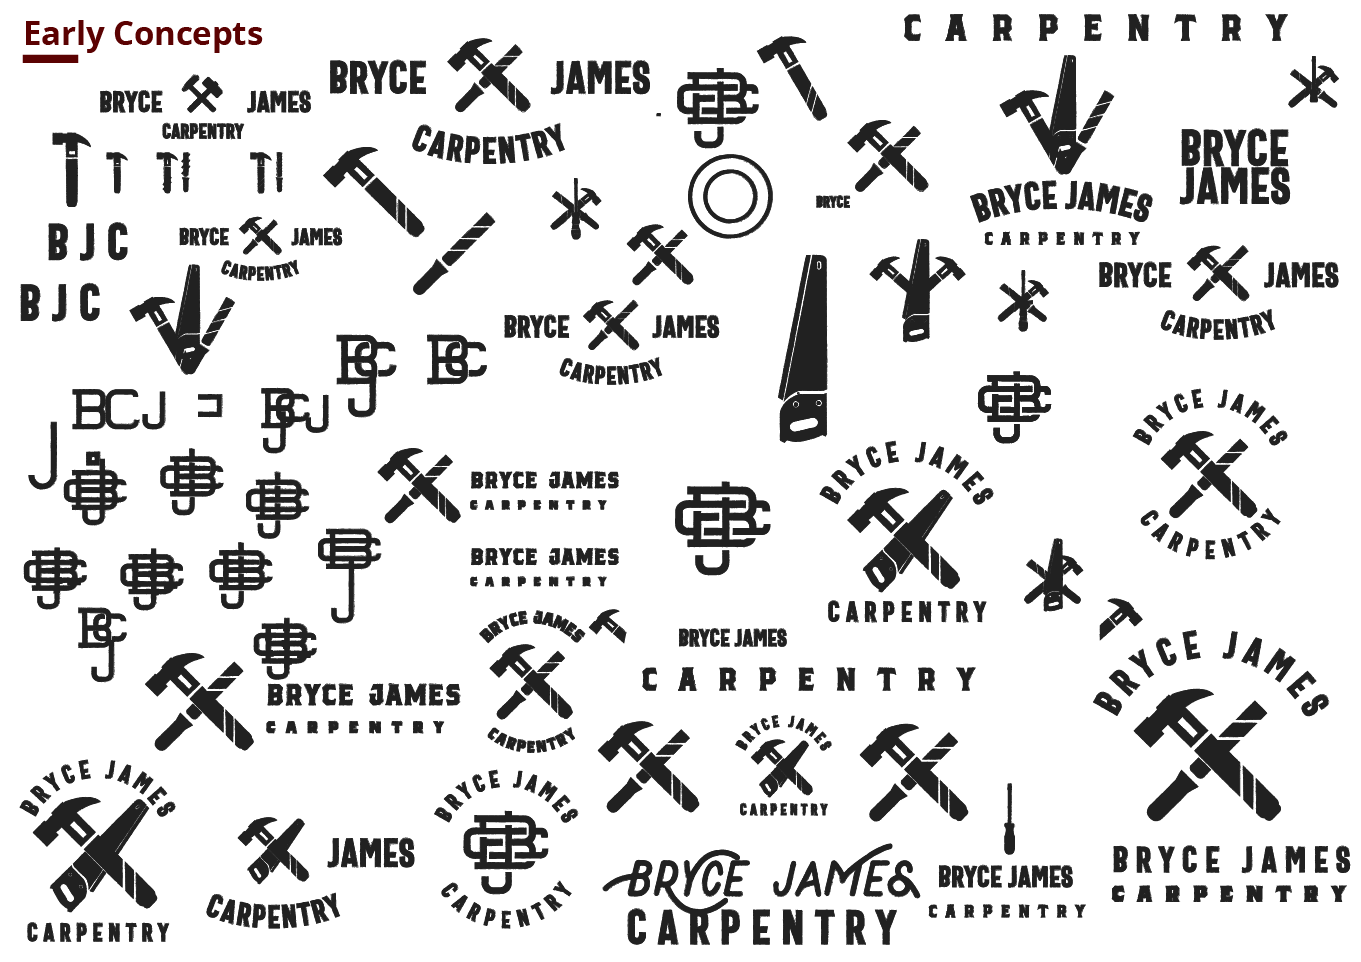 Bryce James Carpentry early logo options